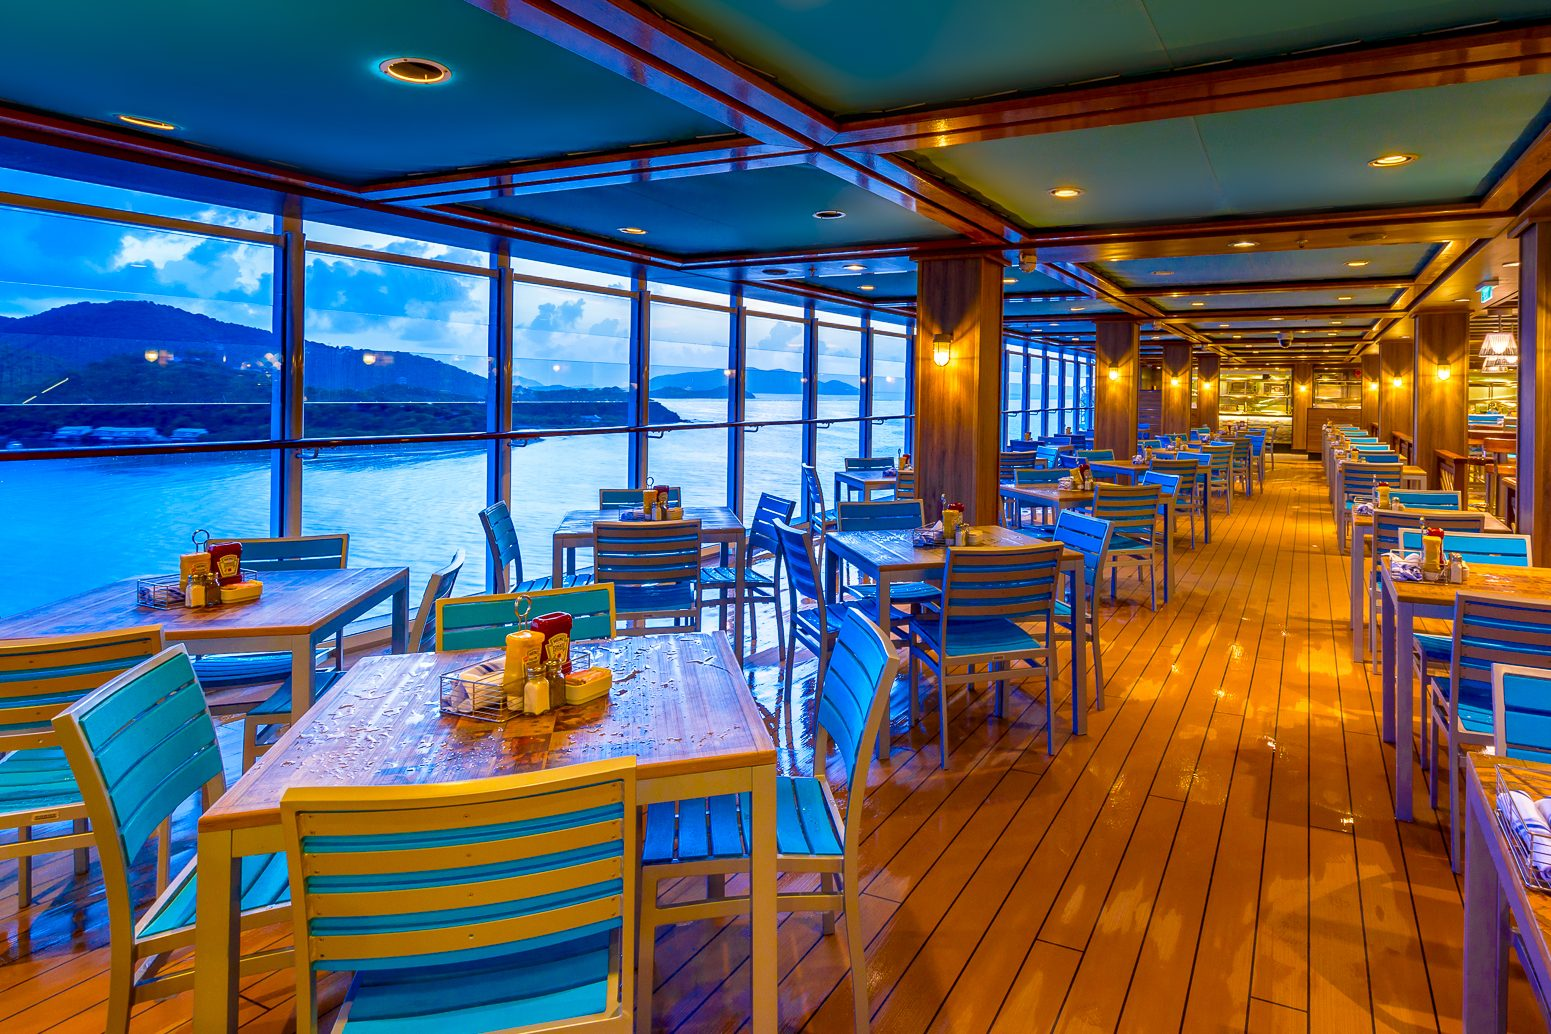 NCL Expands Partnership With Margaritaville - TravelPress